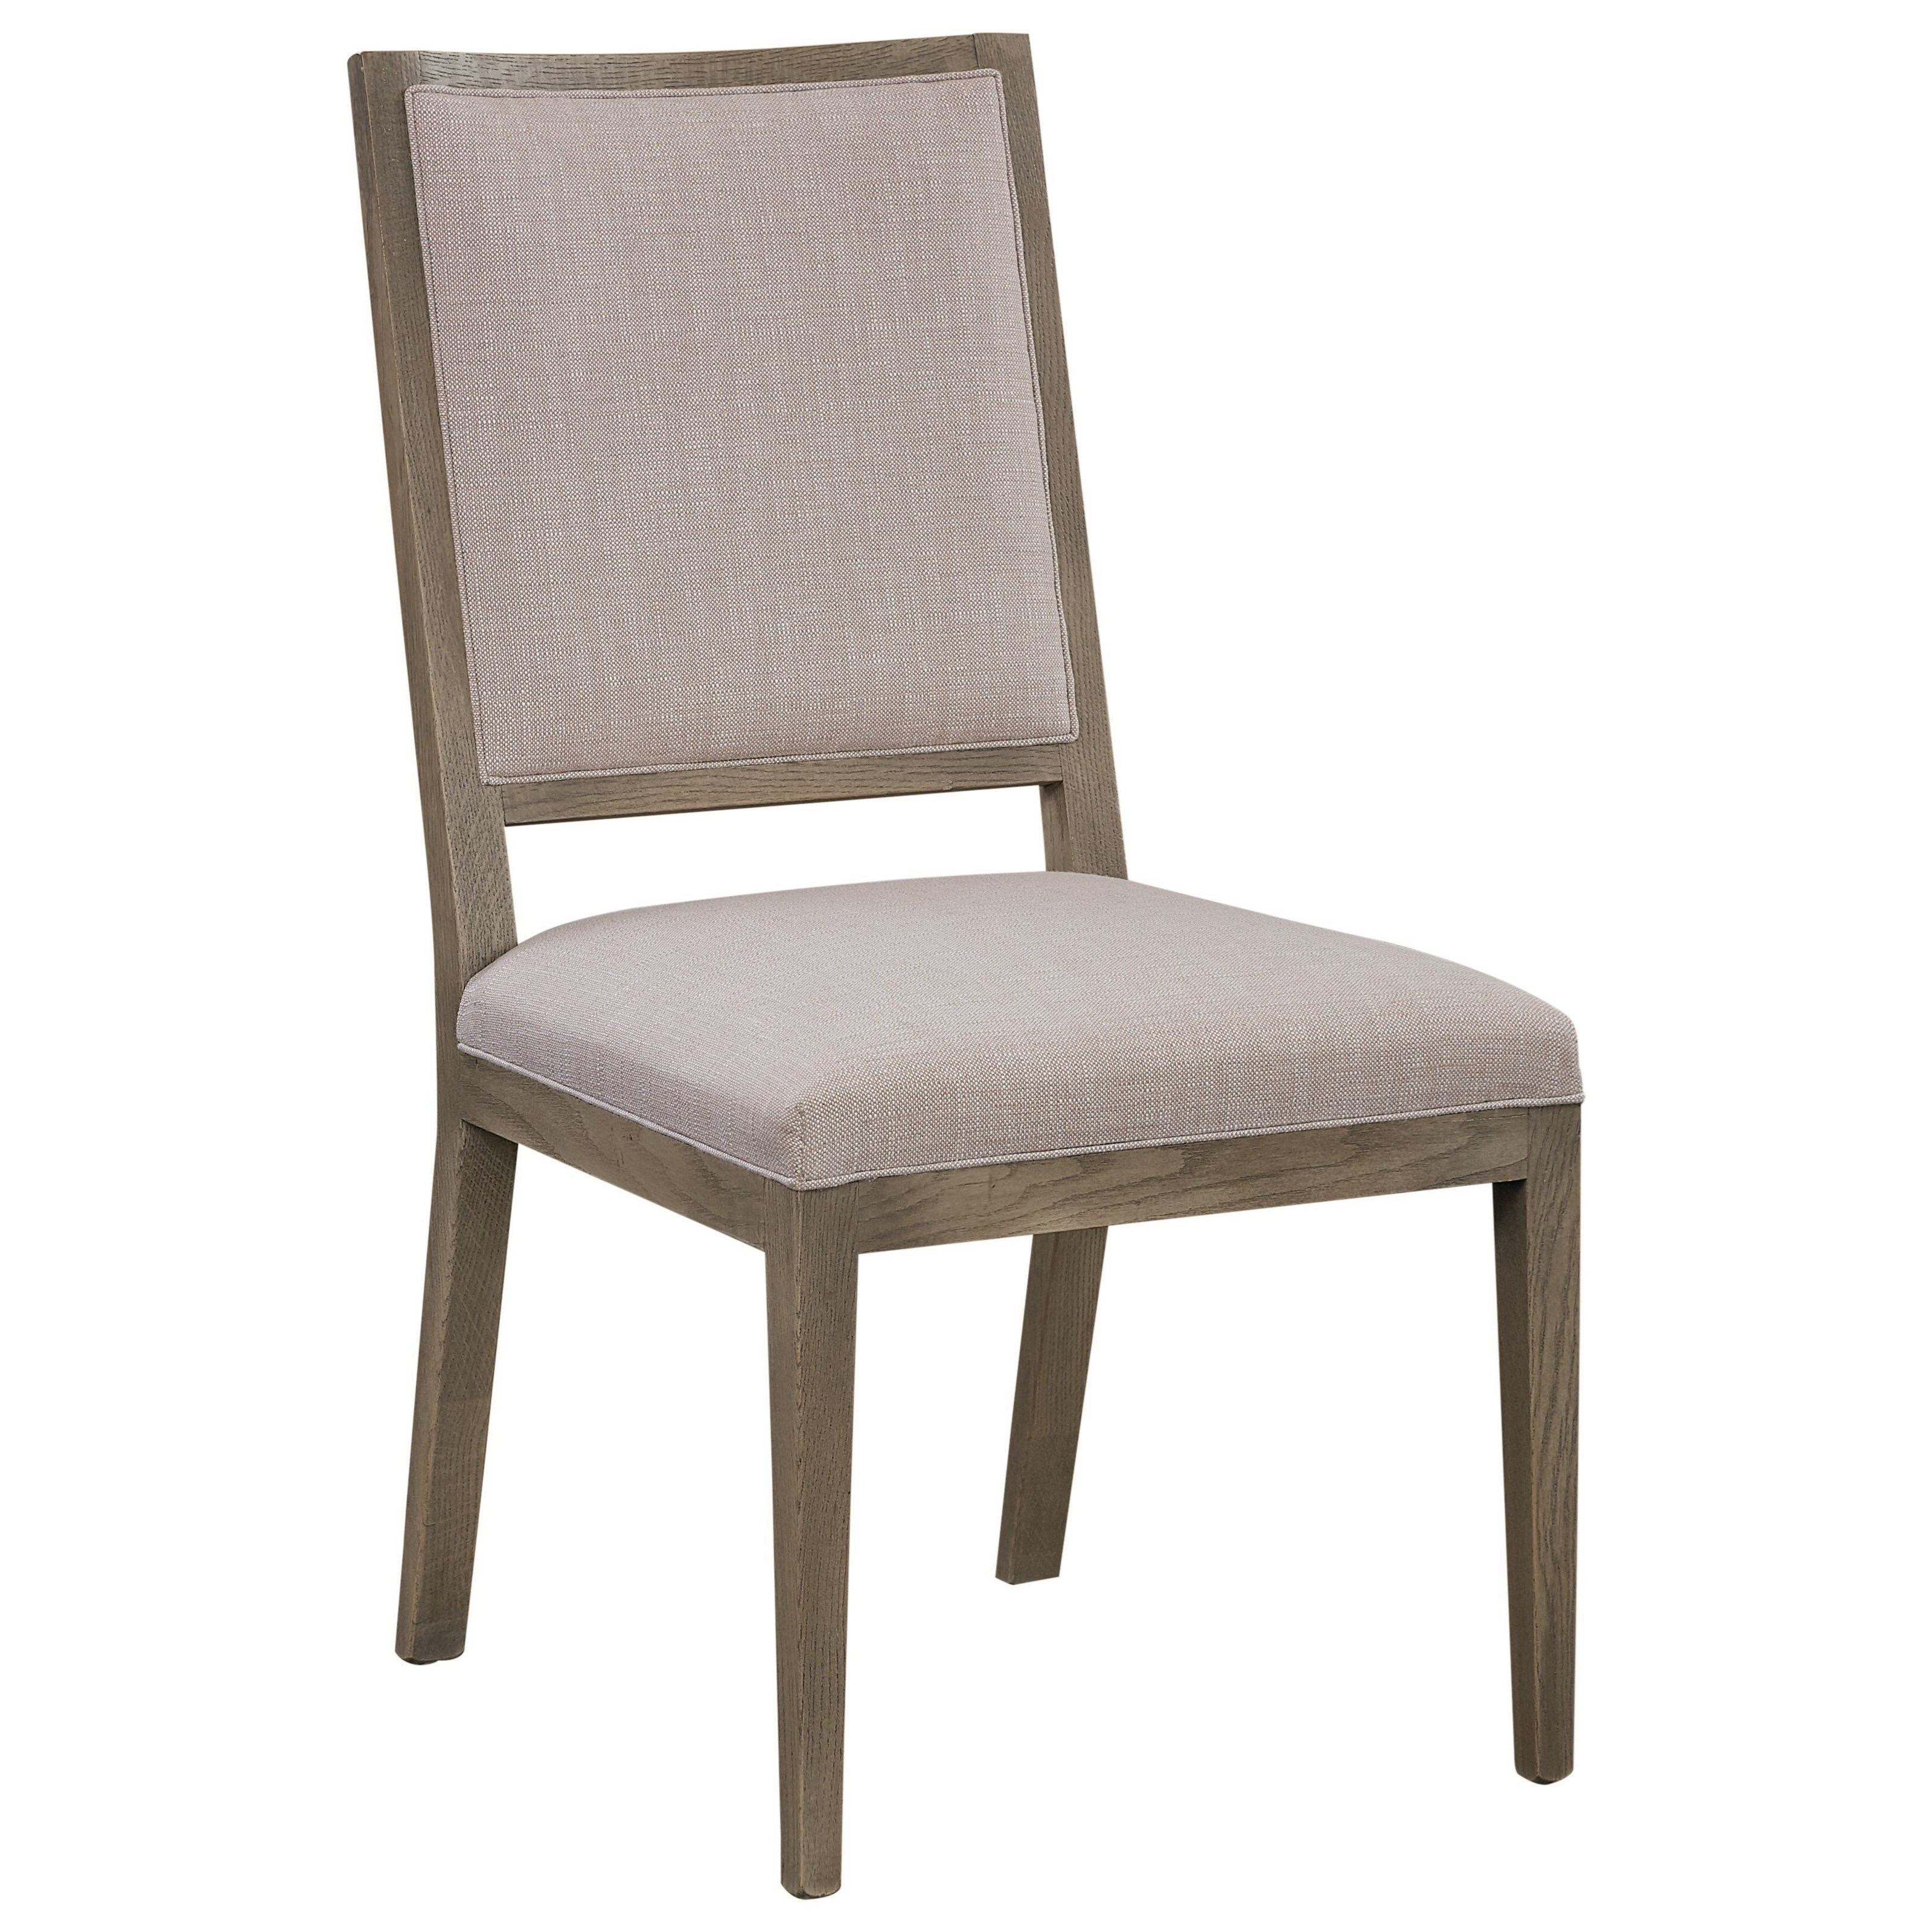 BenchMade Side Chair by Bassett at Suburban Furniture